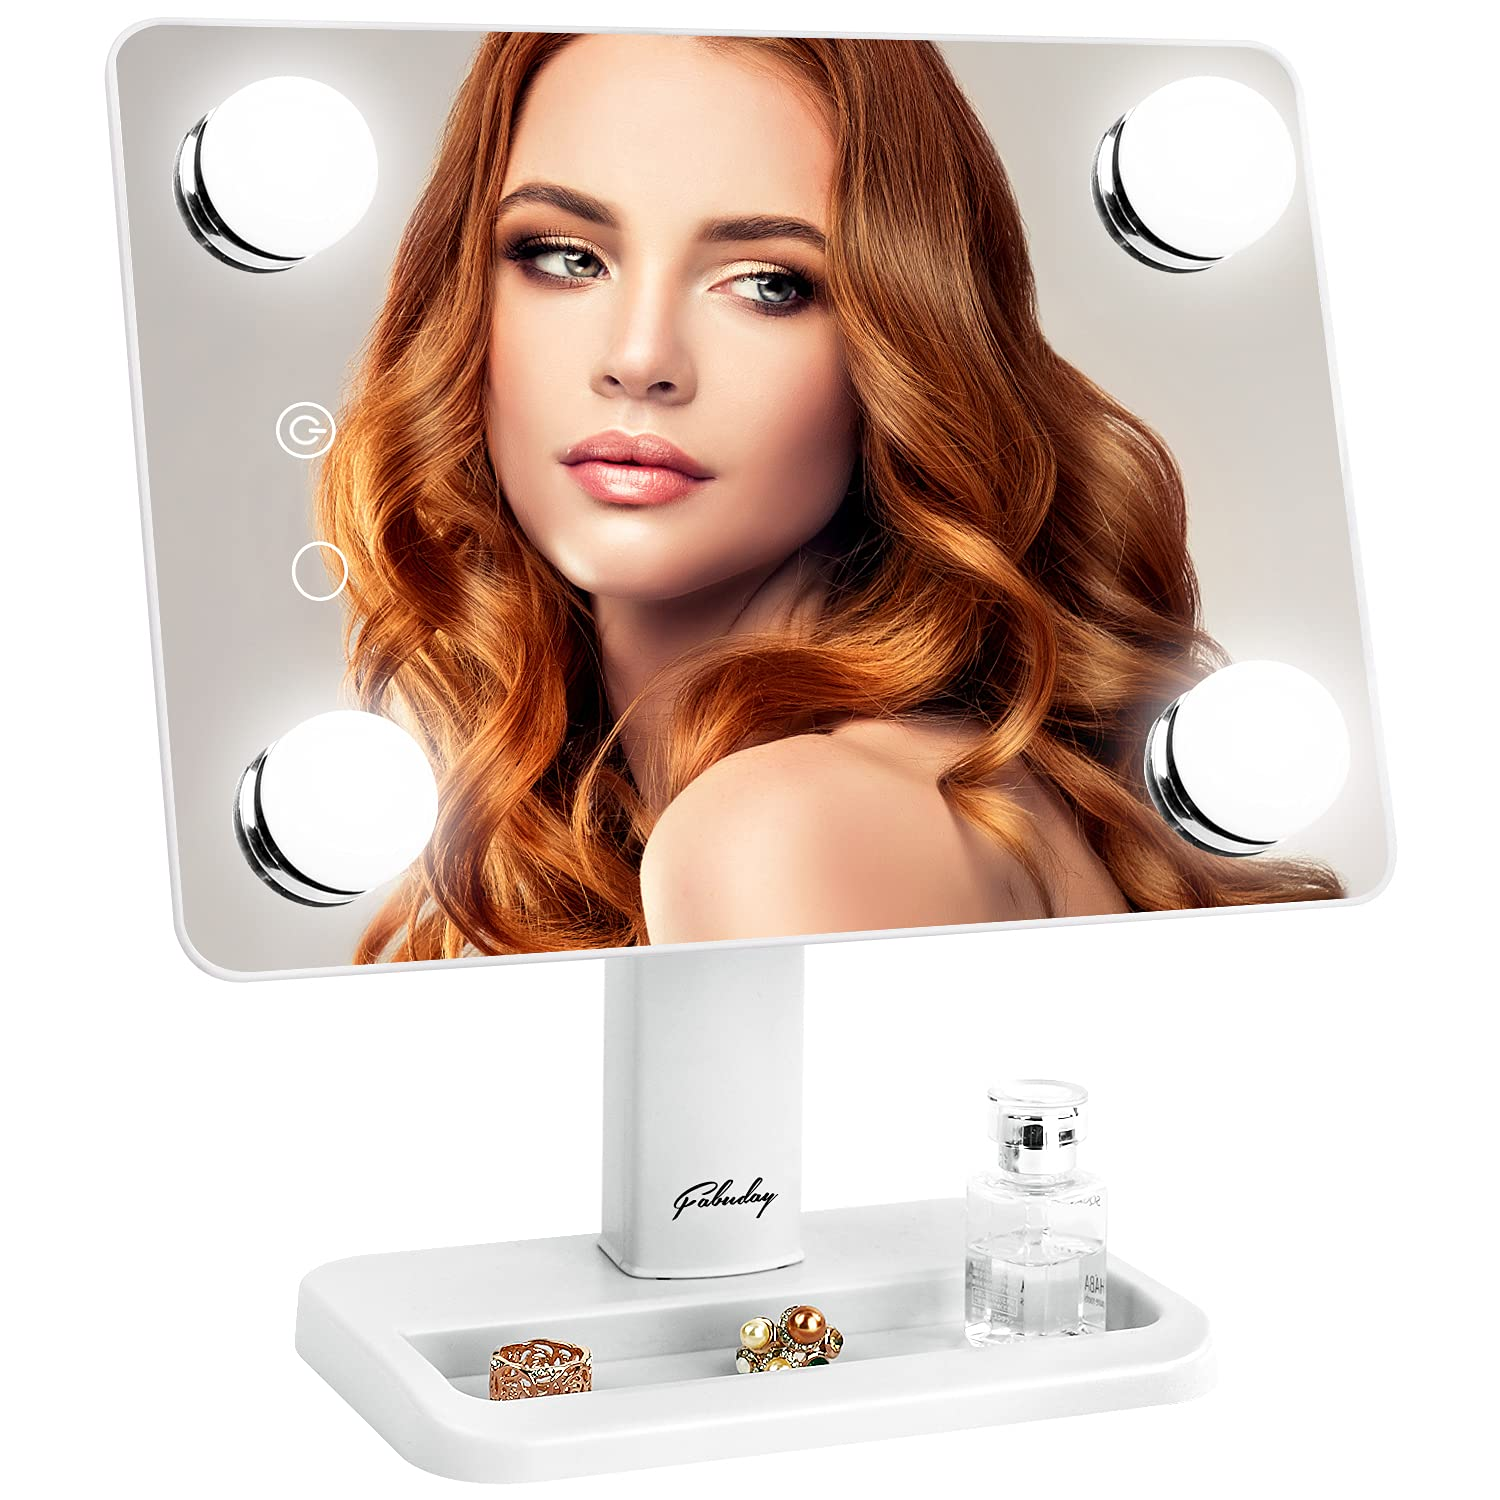 Lighted Makeup Mirror with 4 LED Lights – Fabuday 2 Color Lighting